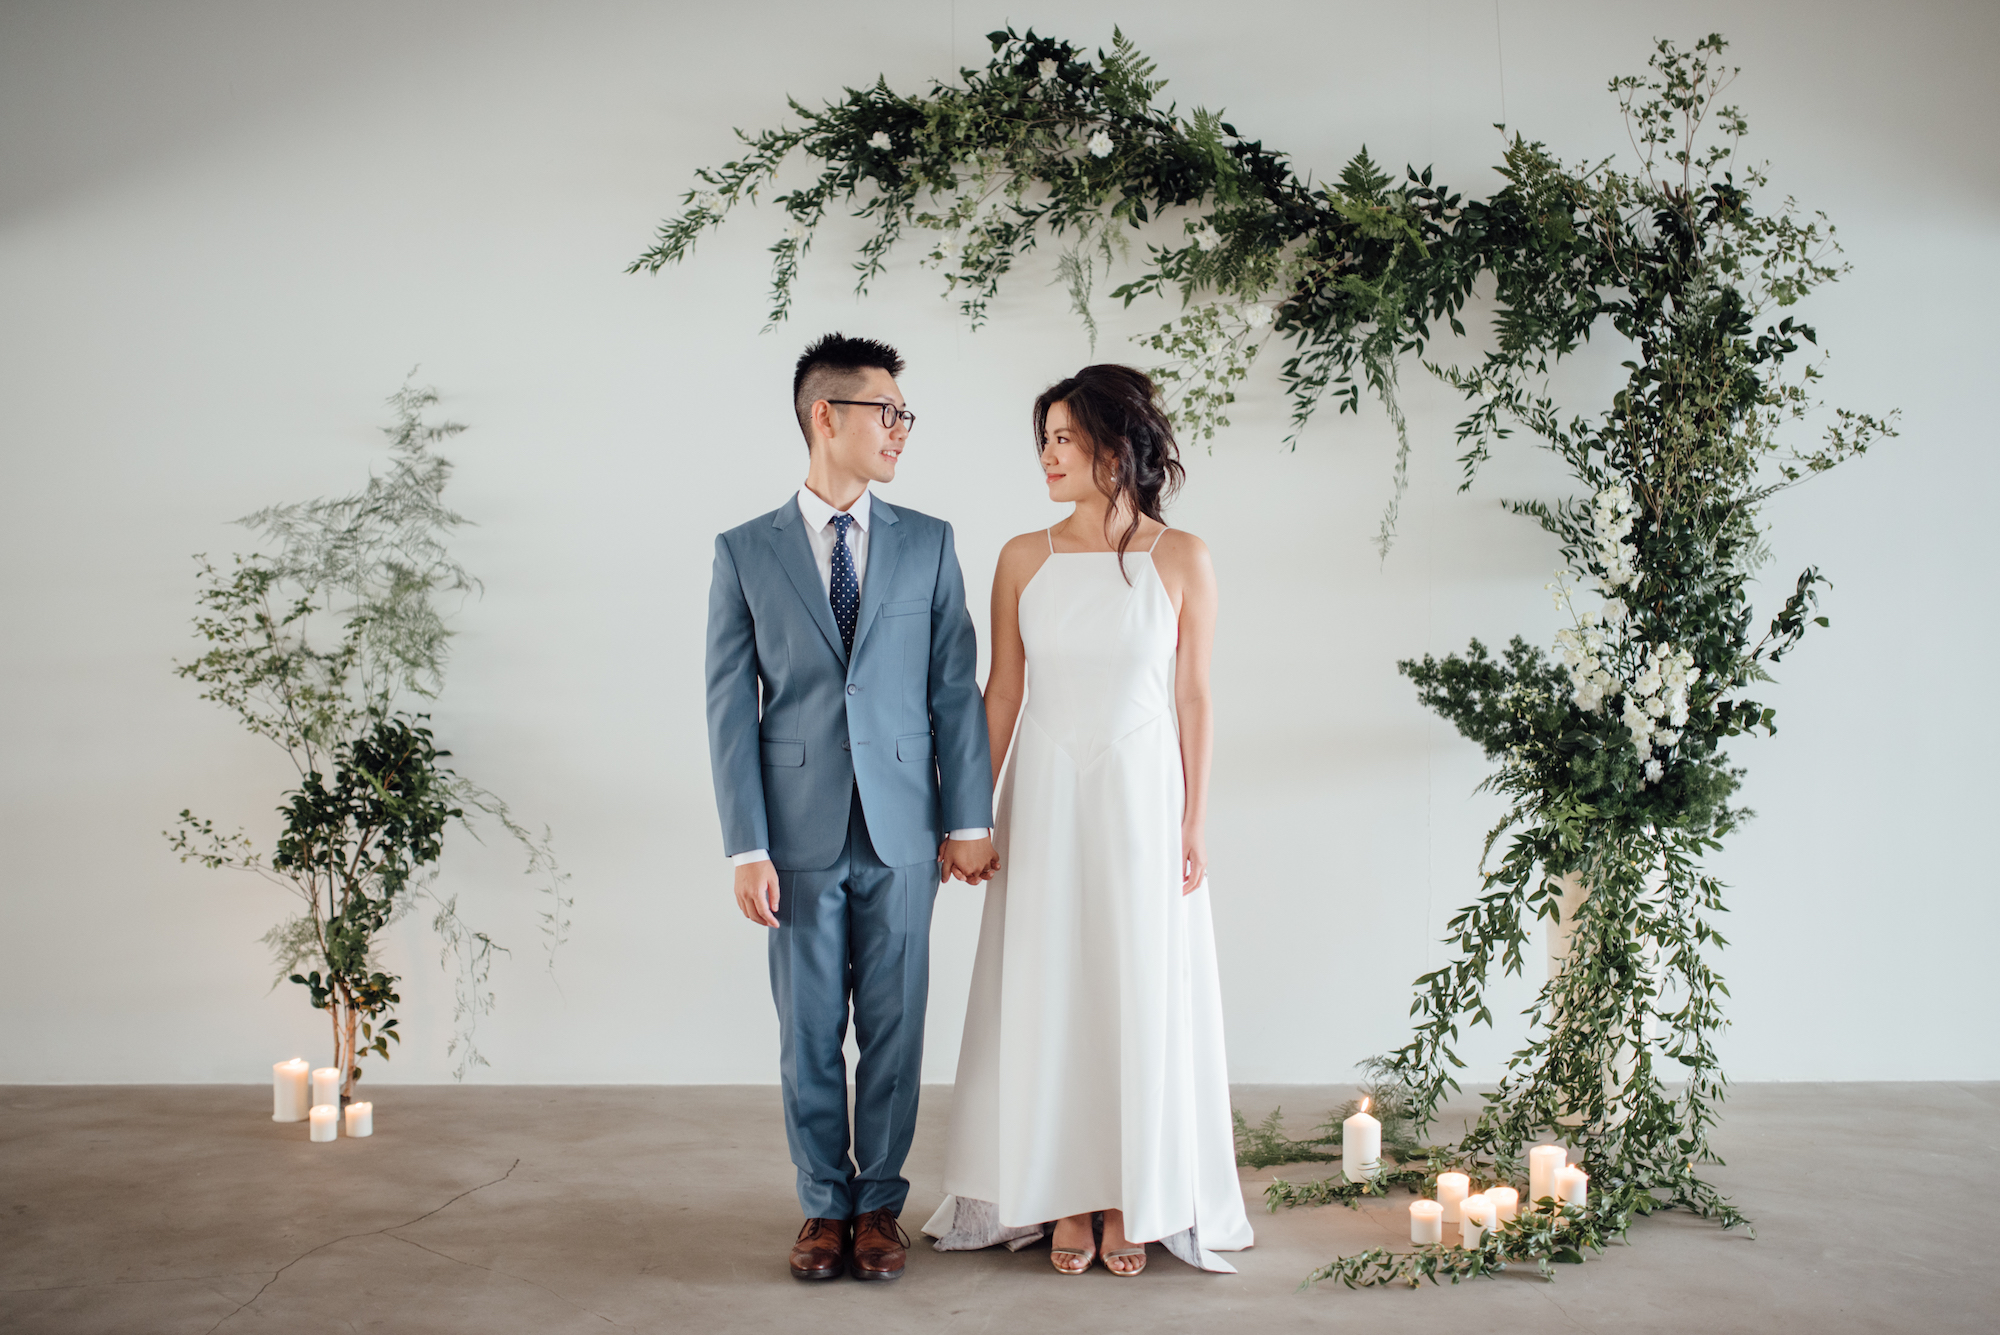 Jason and Shirleen, Image courtesy of    Lauhaus Photography    and    Timeless Events Design